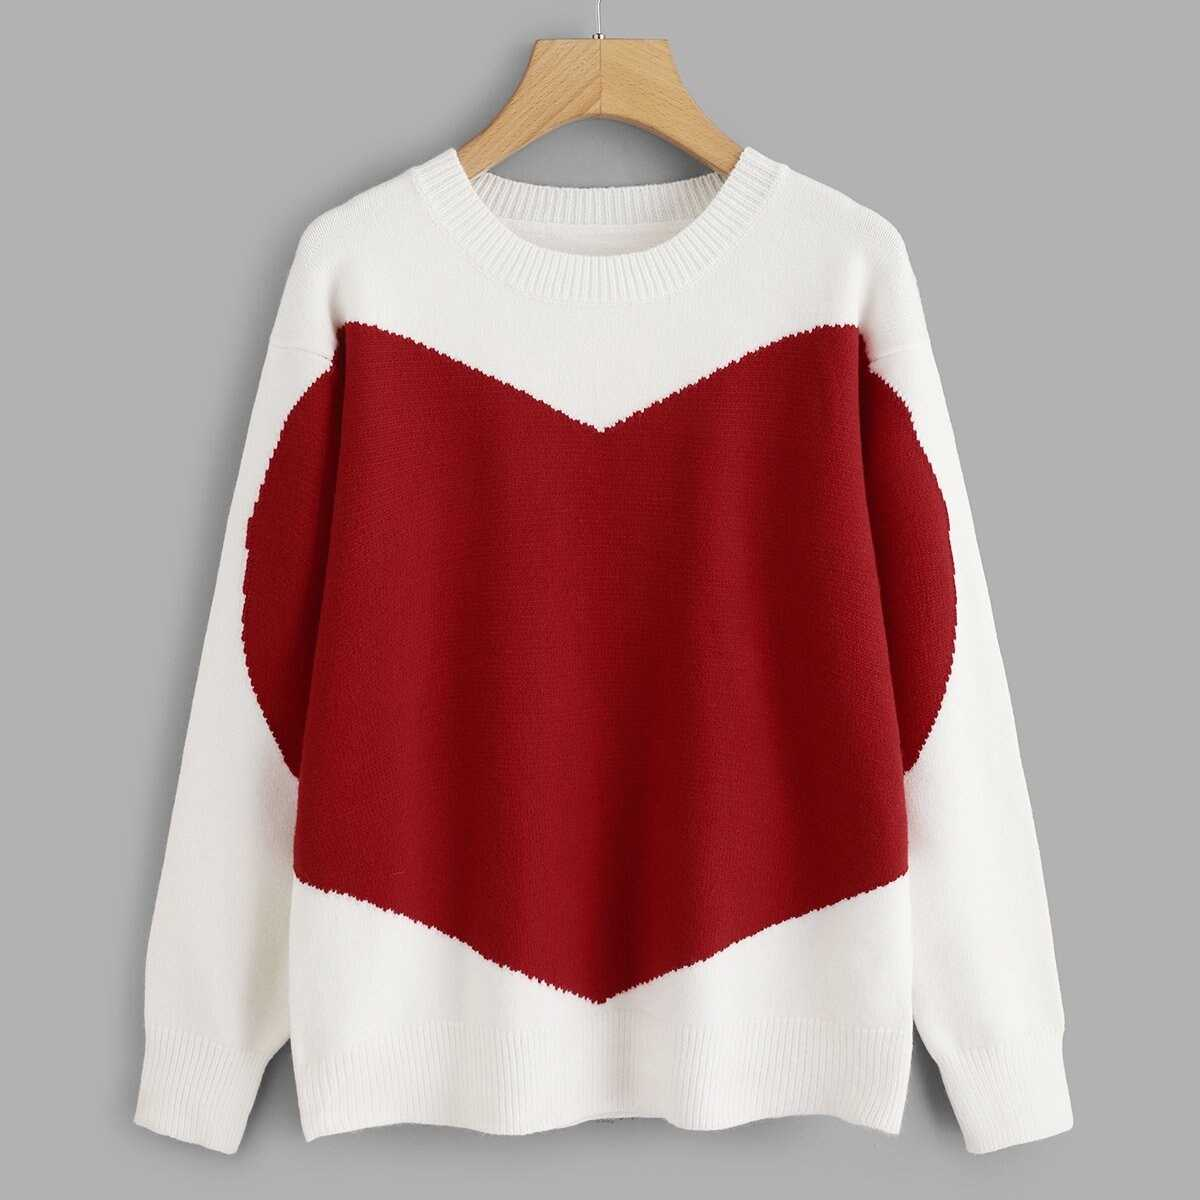 Two Tone Heart Pattern Sweater - Shein - GOOFASH